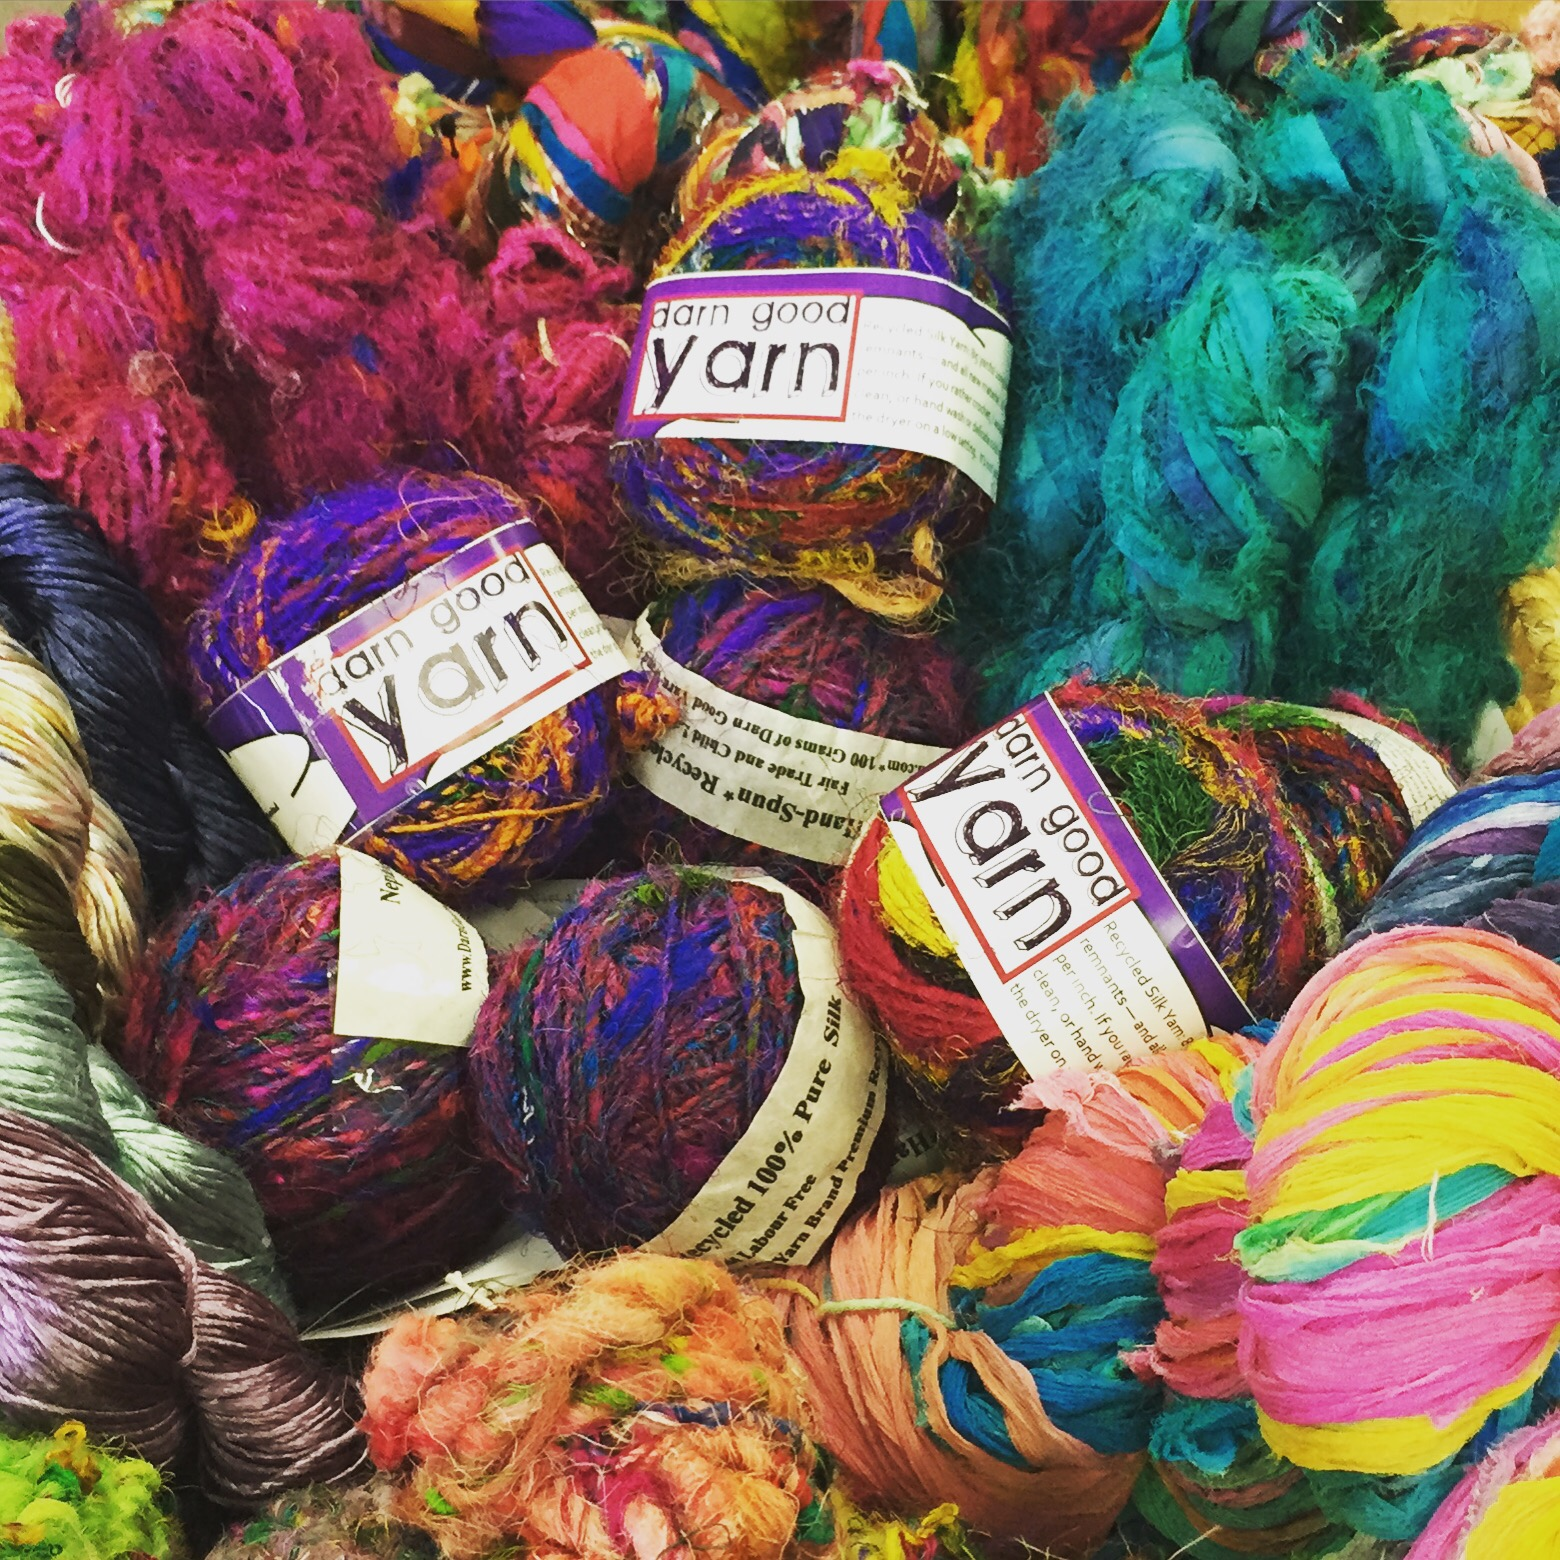 Darn Good Yarn at Twisted Purl's Yarn shop